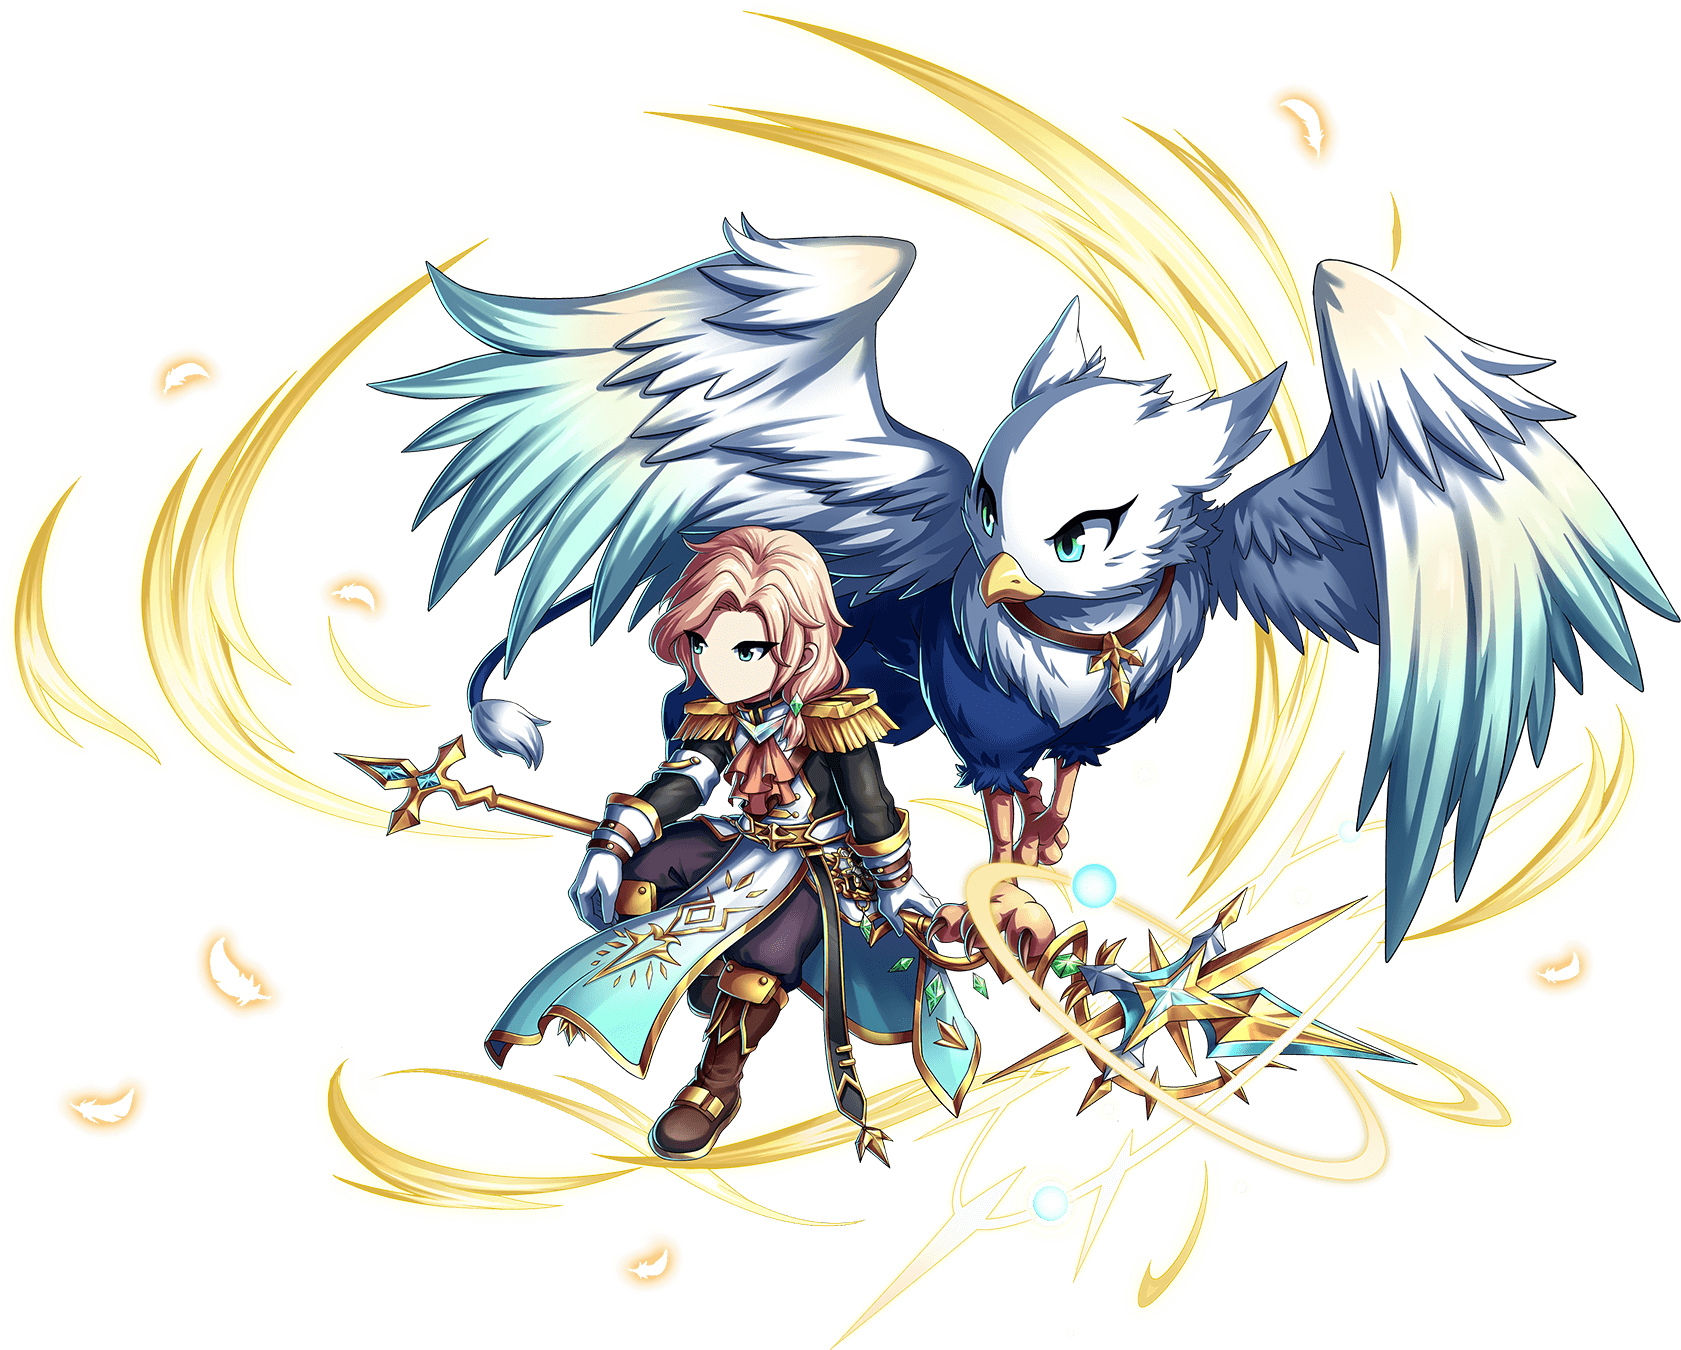 Pin By Sarababtunde Harabe On Brave Frontiere In 2020 Character Design Male Brave Frontier Character Design